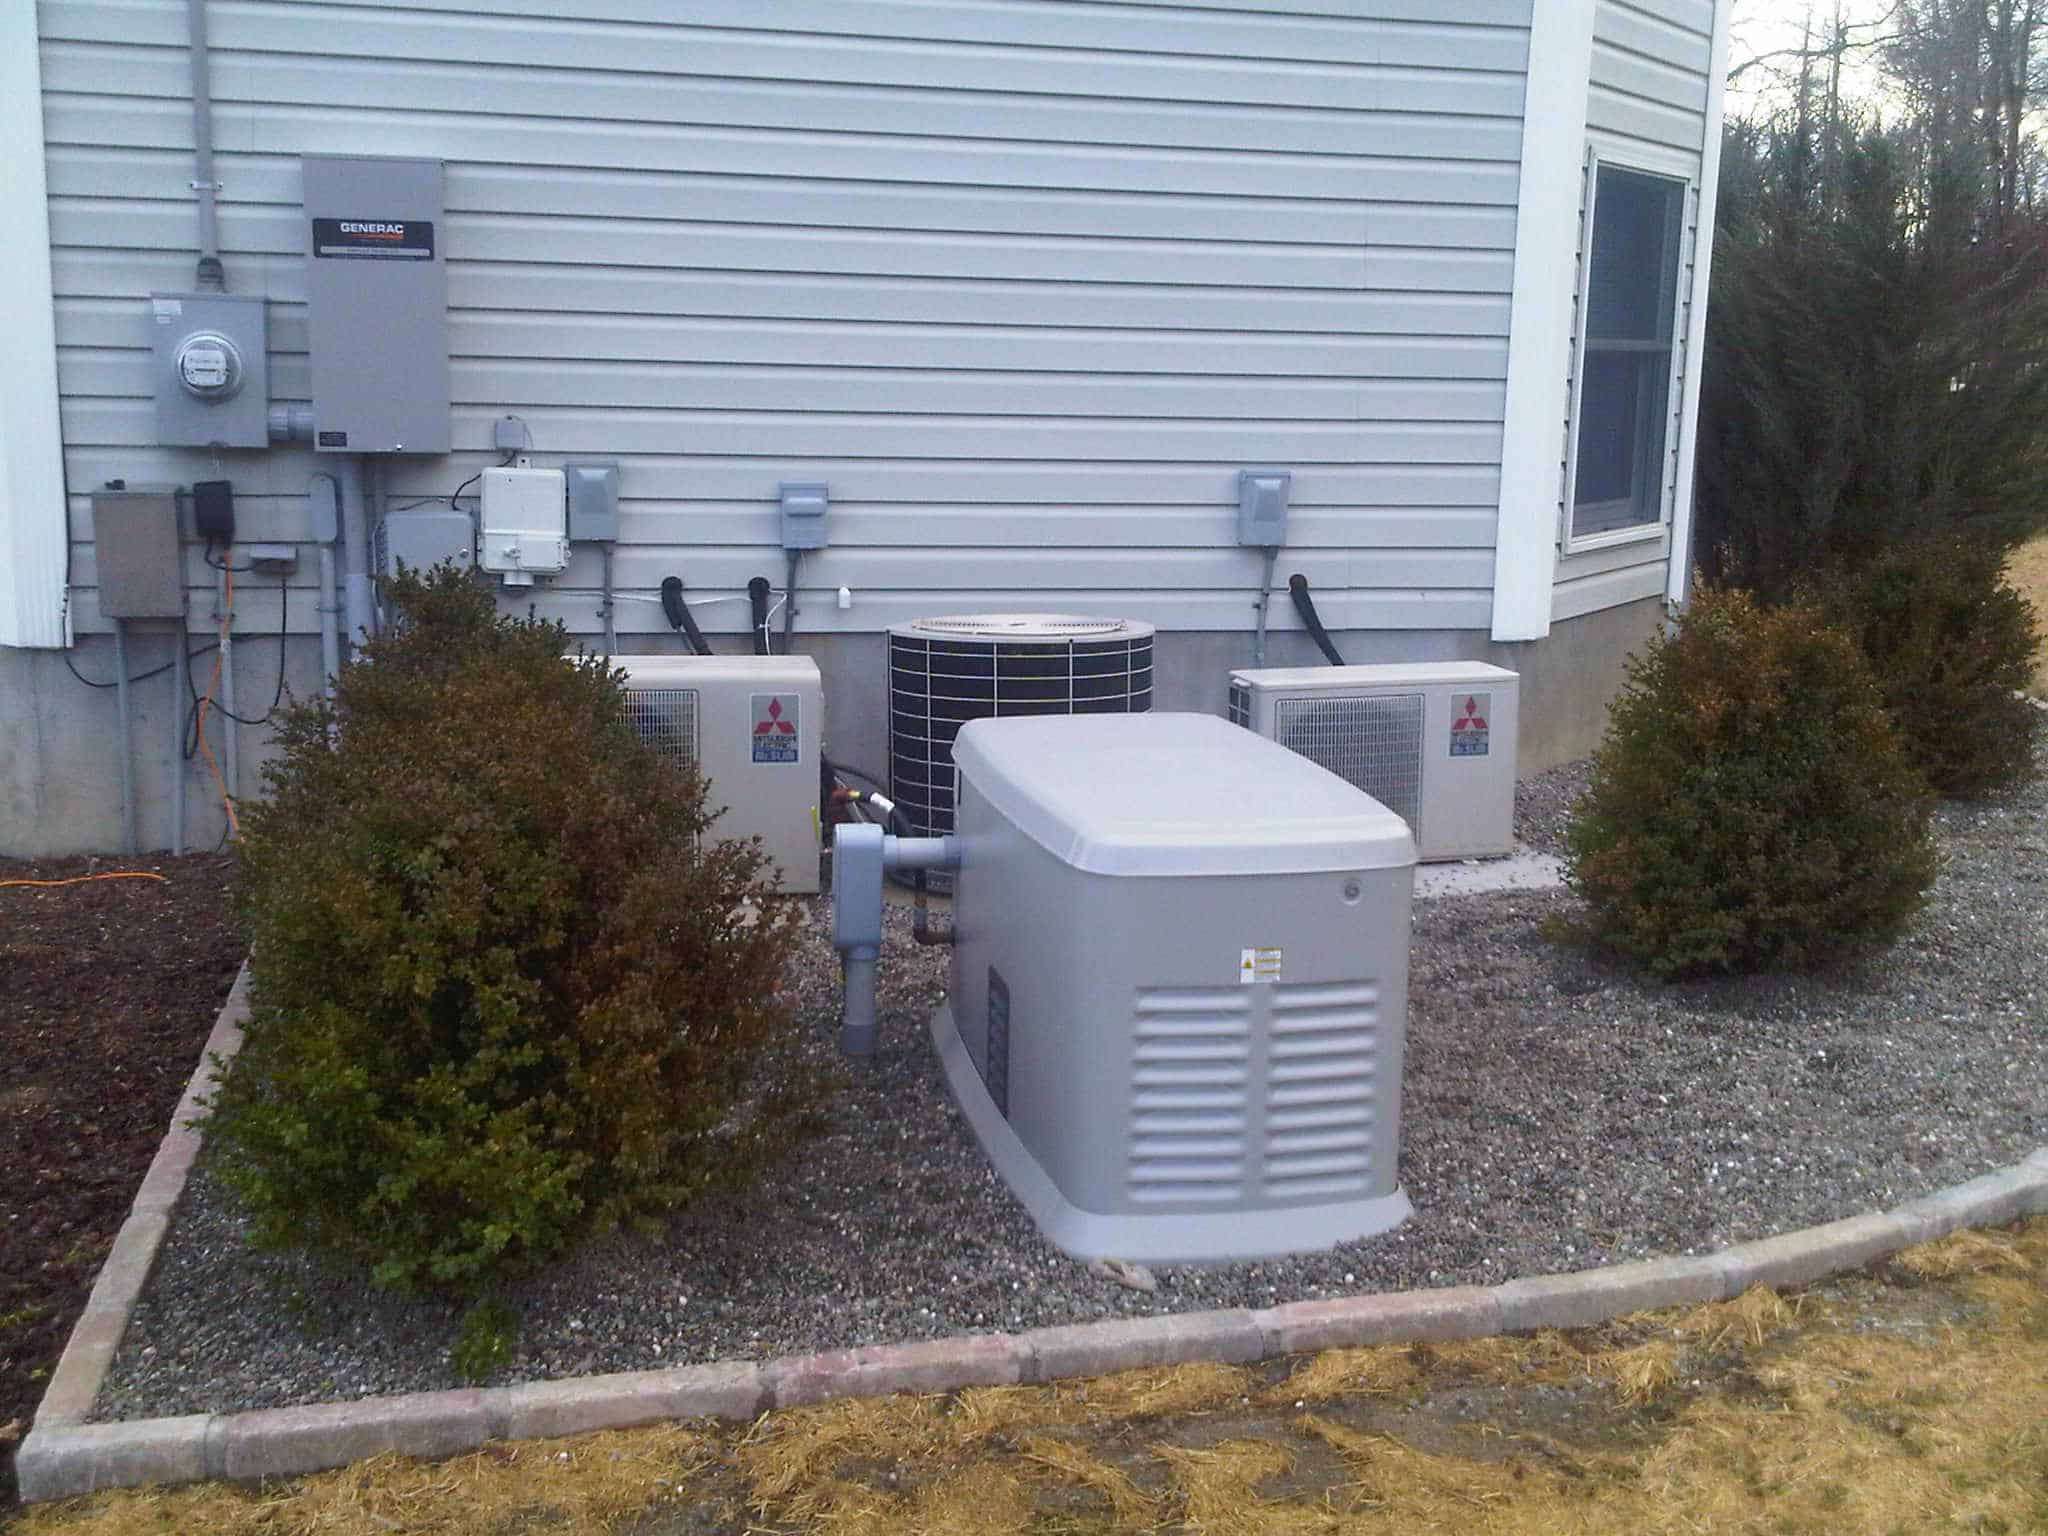 Standby Generators Protect Your Home During Winter Power